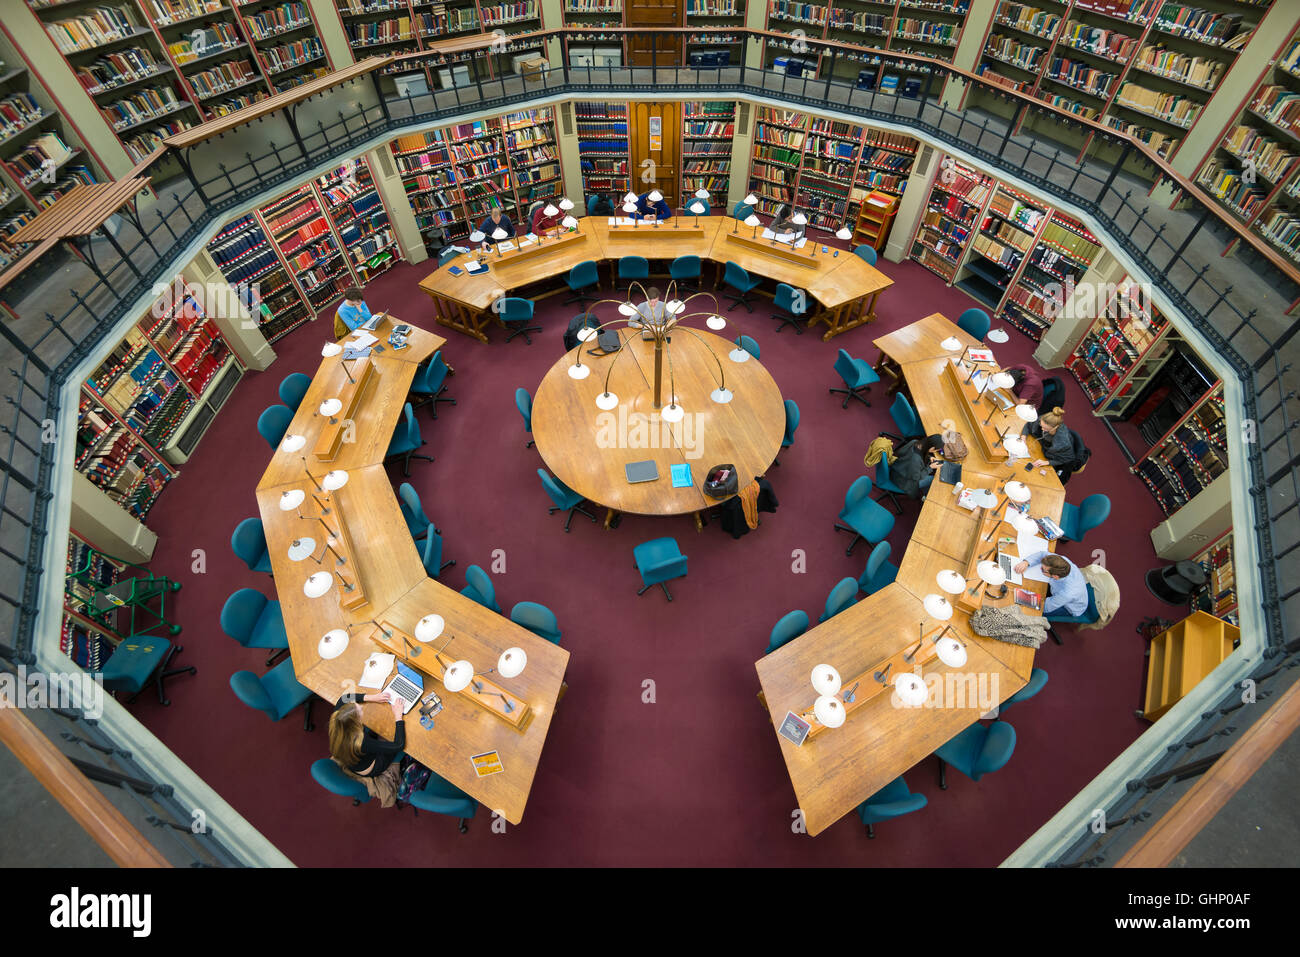 Kings college london maughan library